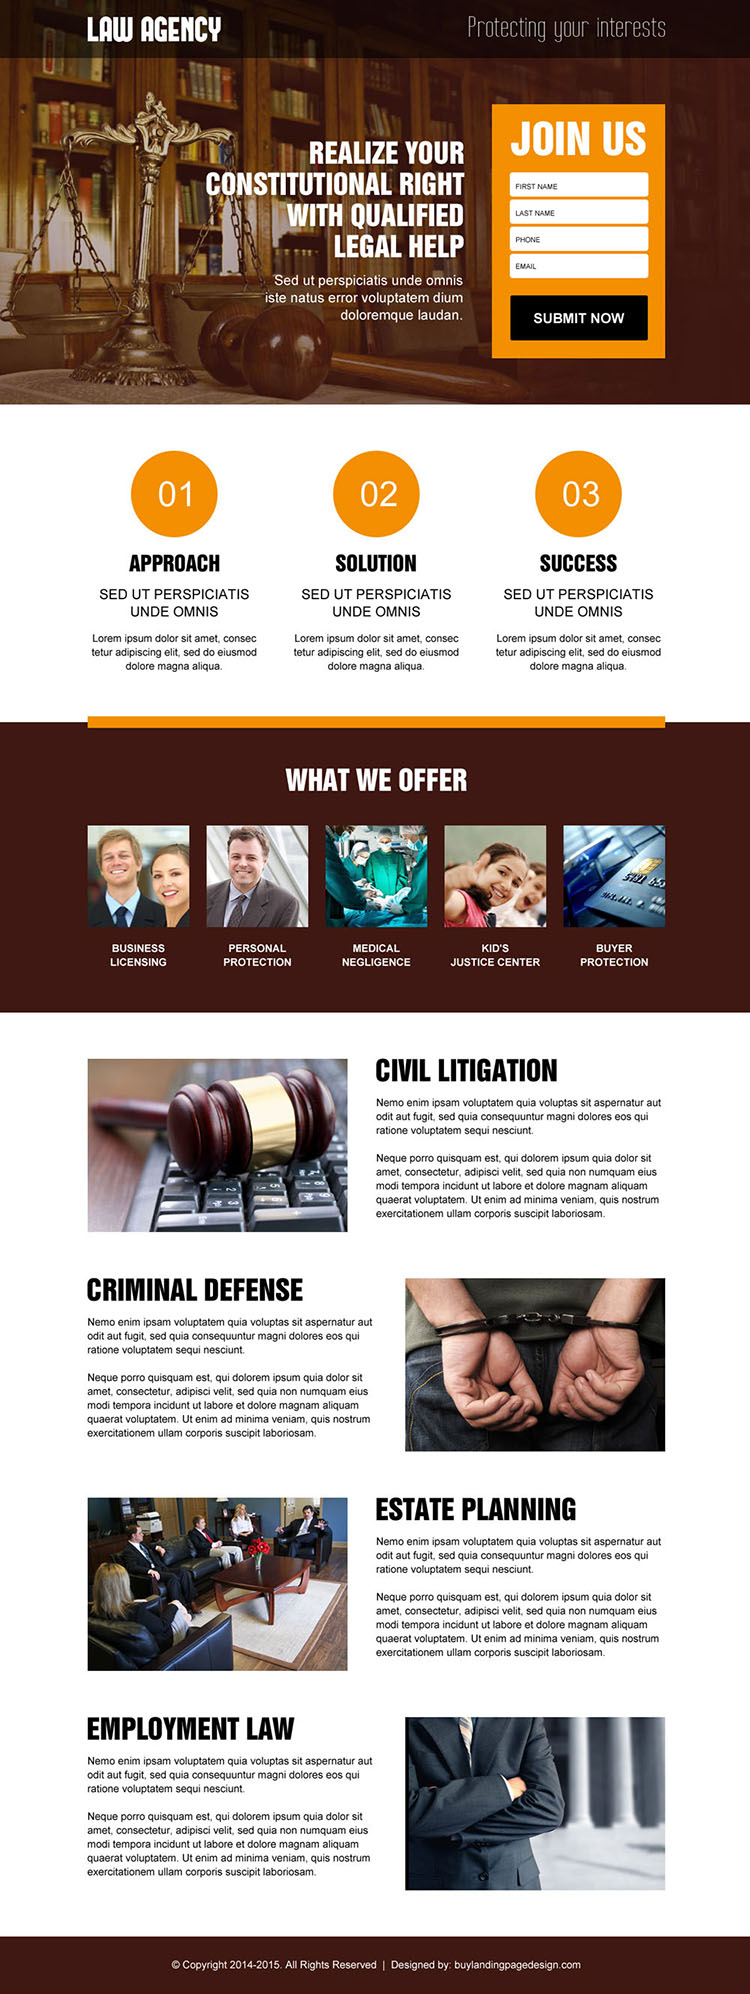 best law agency responsive landing page design for legal help